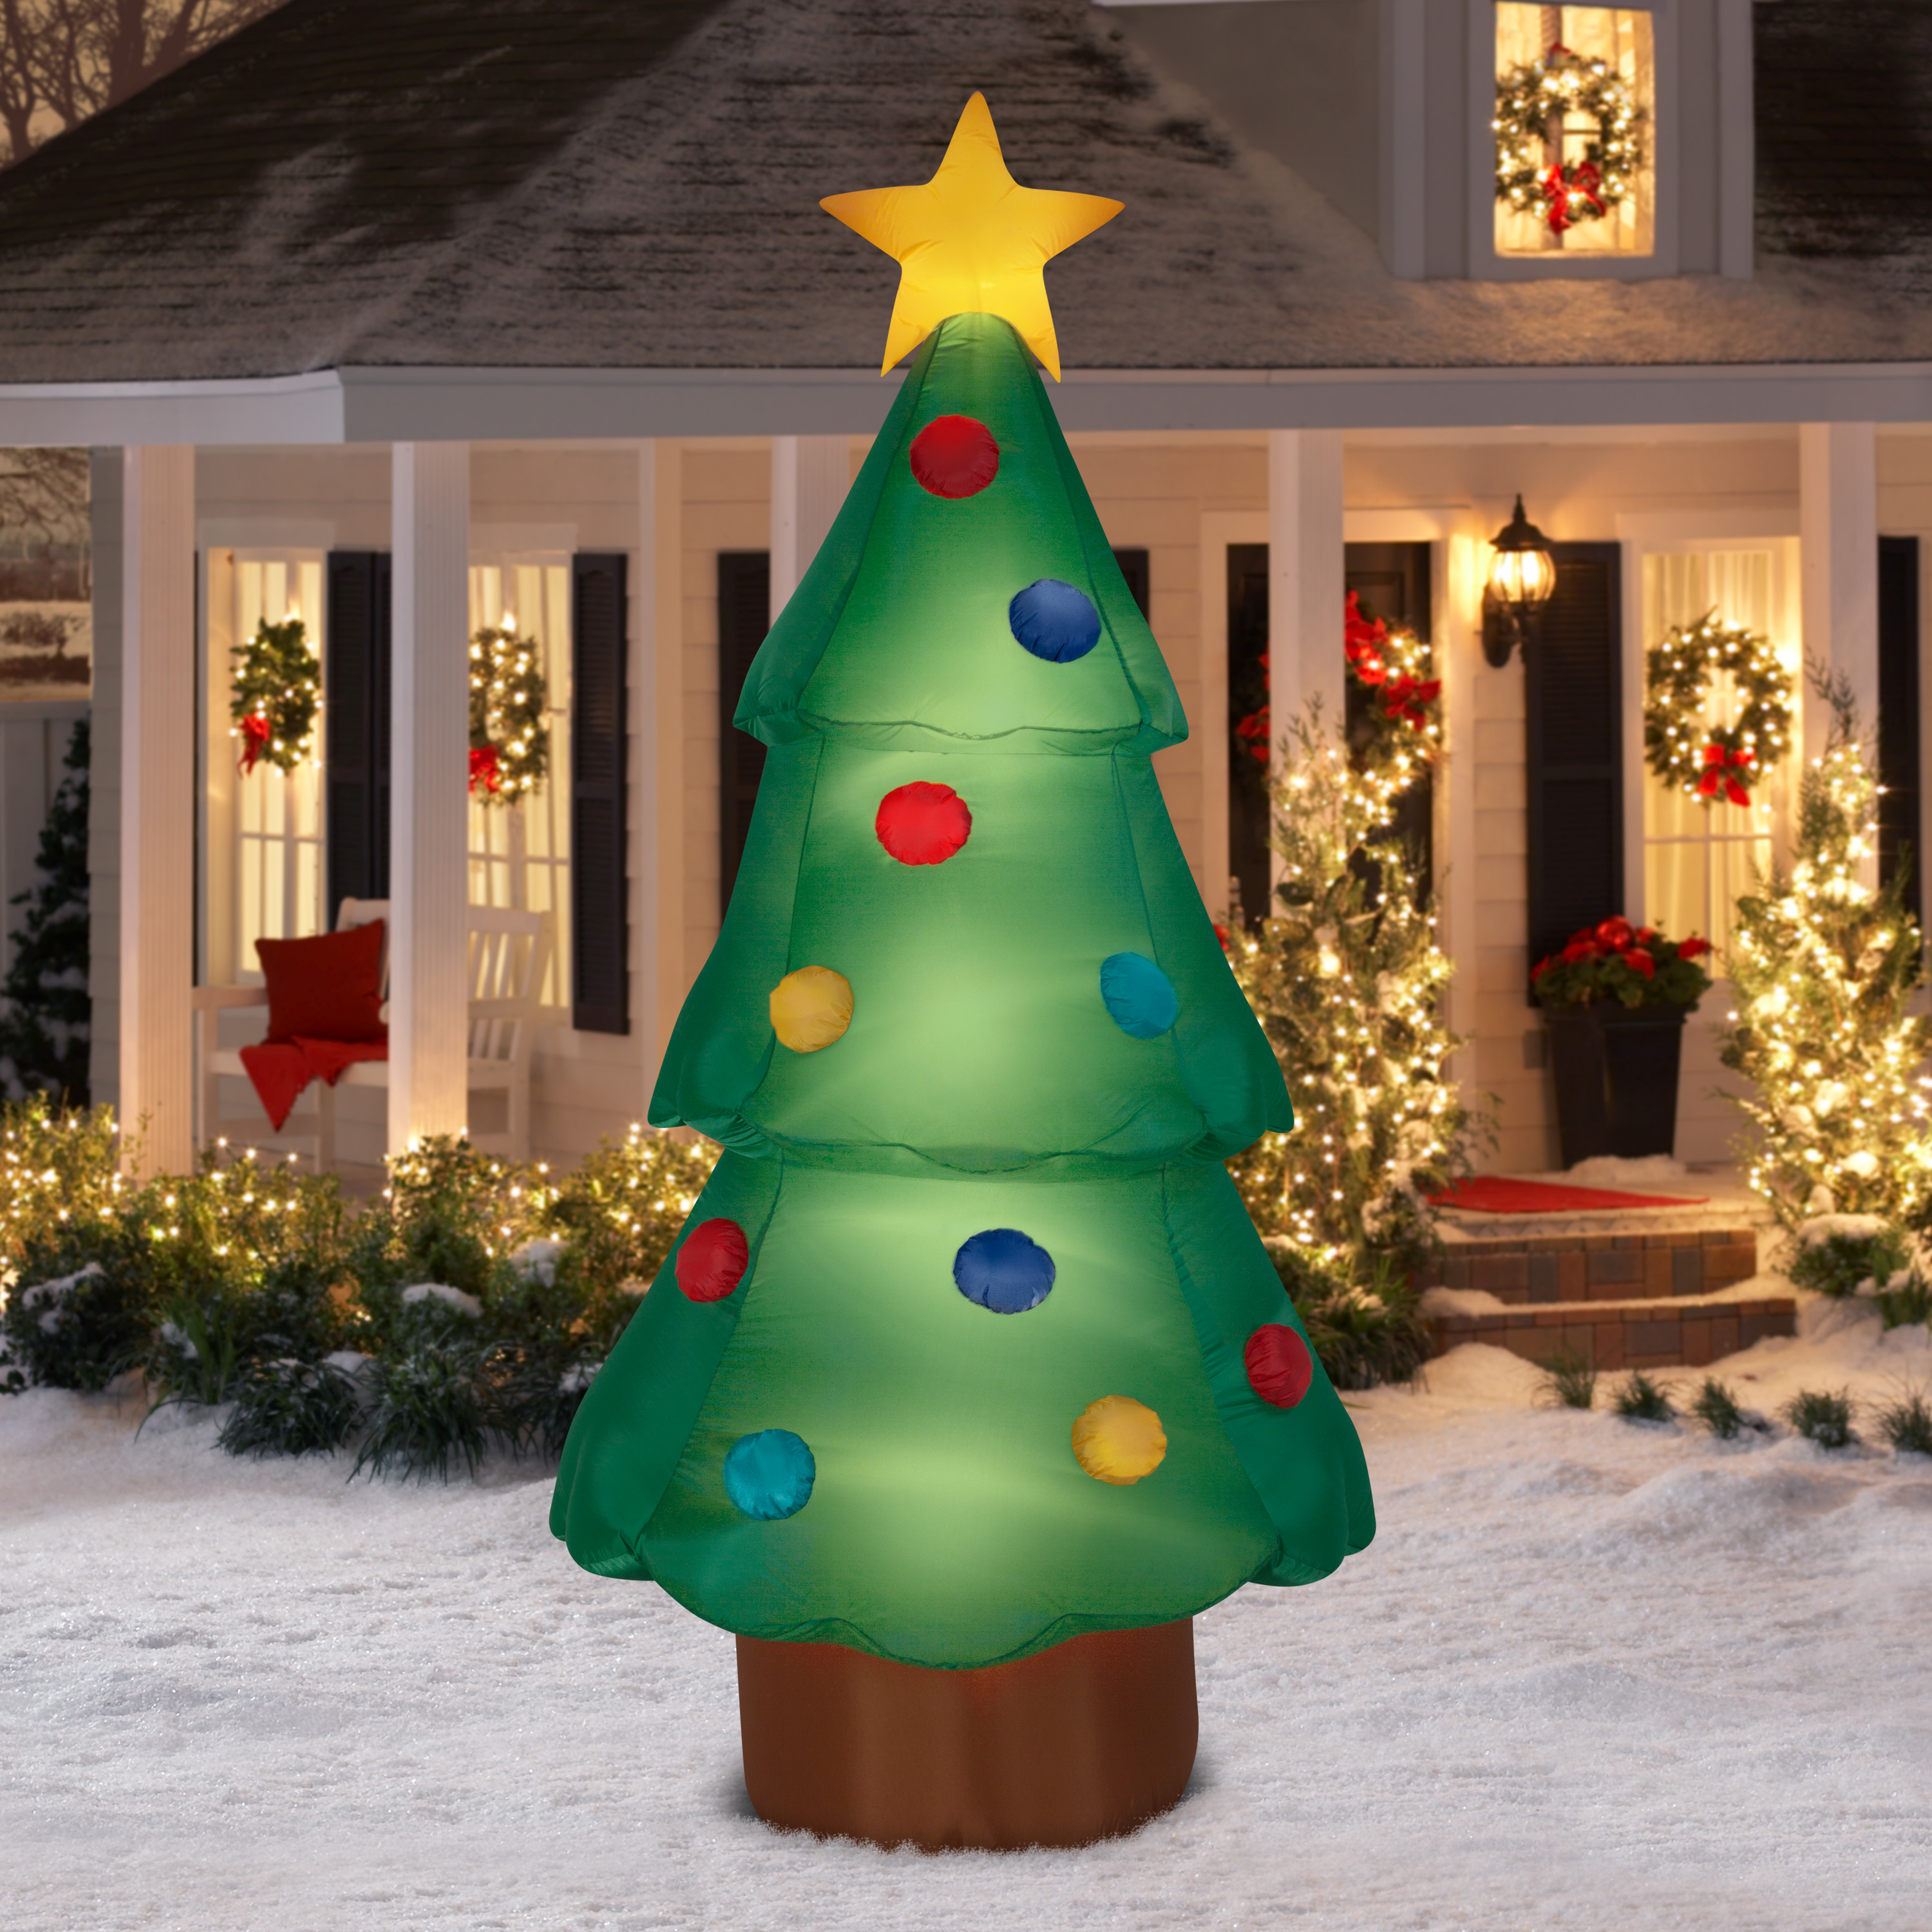 Elegant Airblown Inflatable Christmas Tree Giant 10ft Tall By Gemmy Industries    Walmart.com